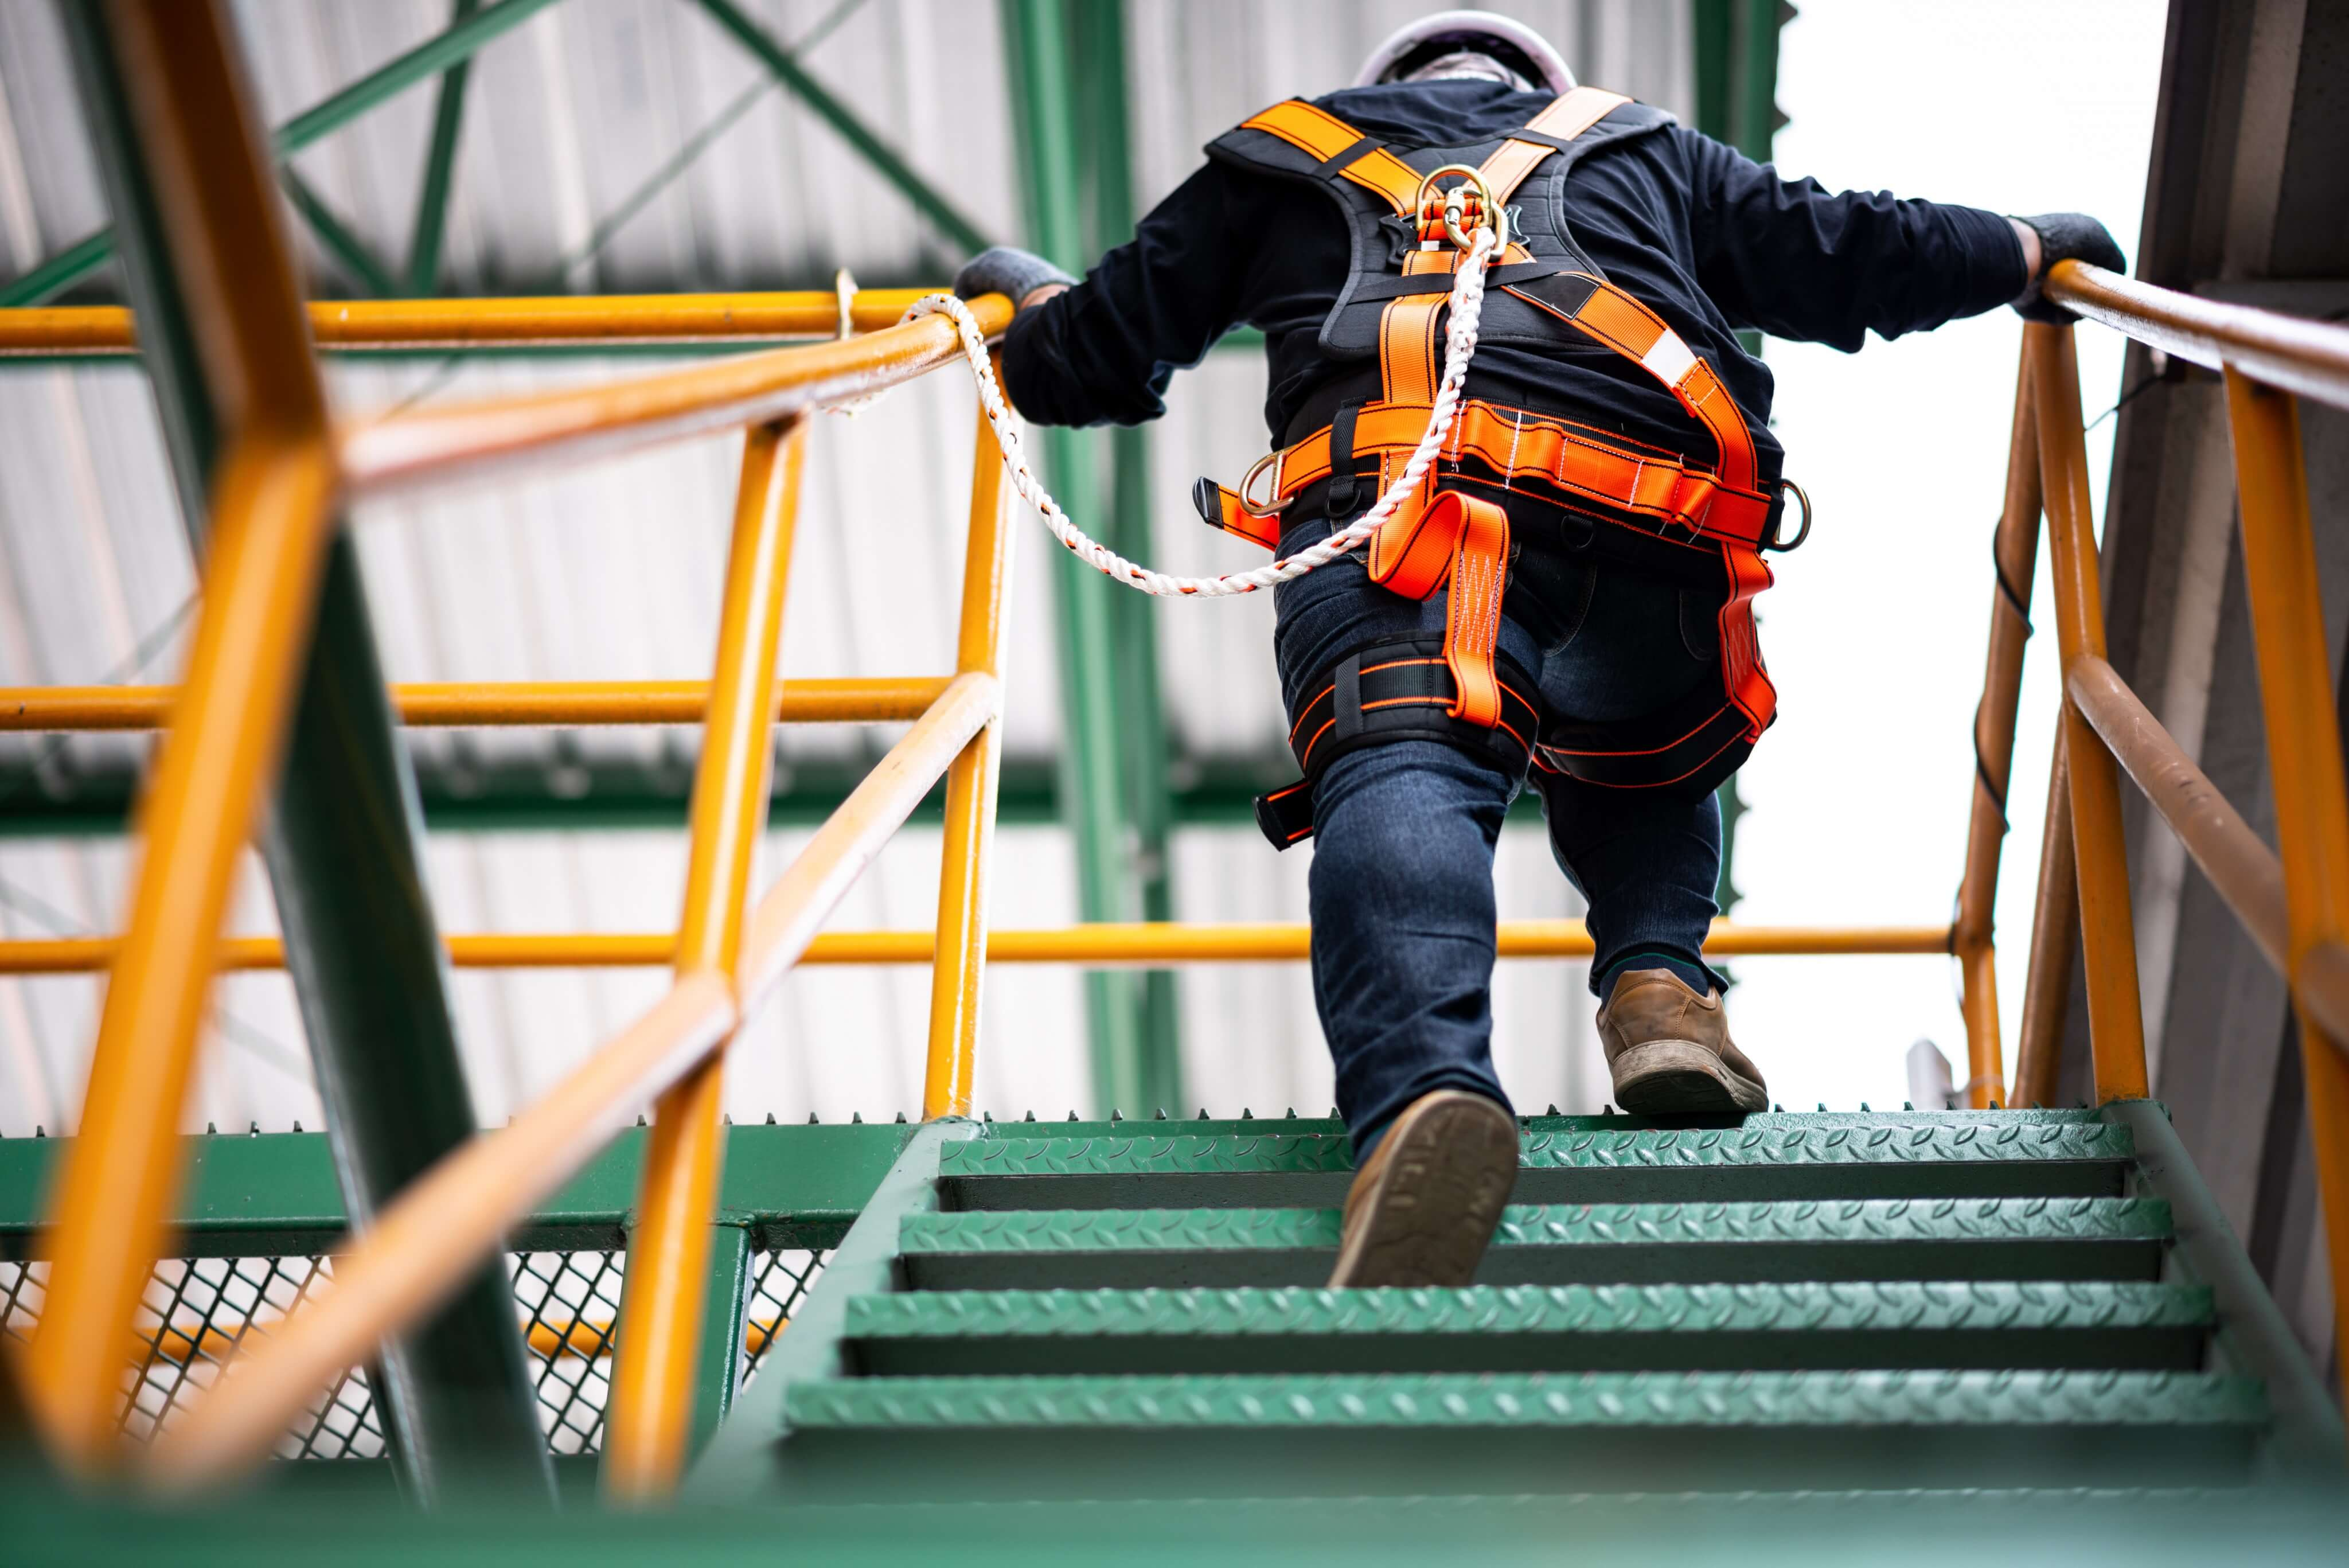 Ensure the Safety of Workers with Fall Protection and Confined Space Equipment Rentals